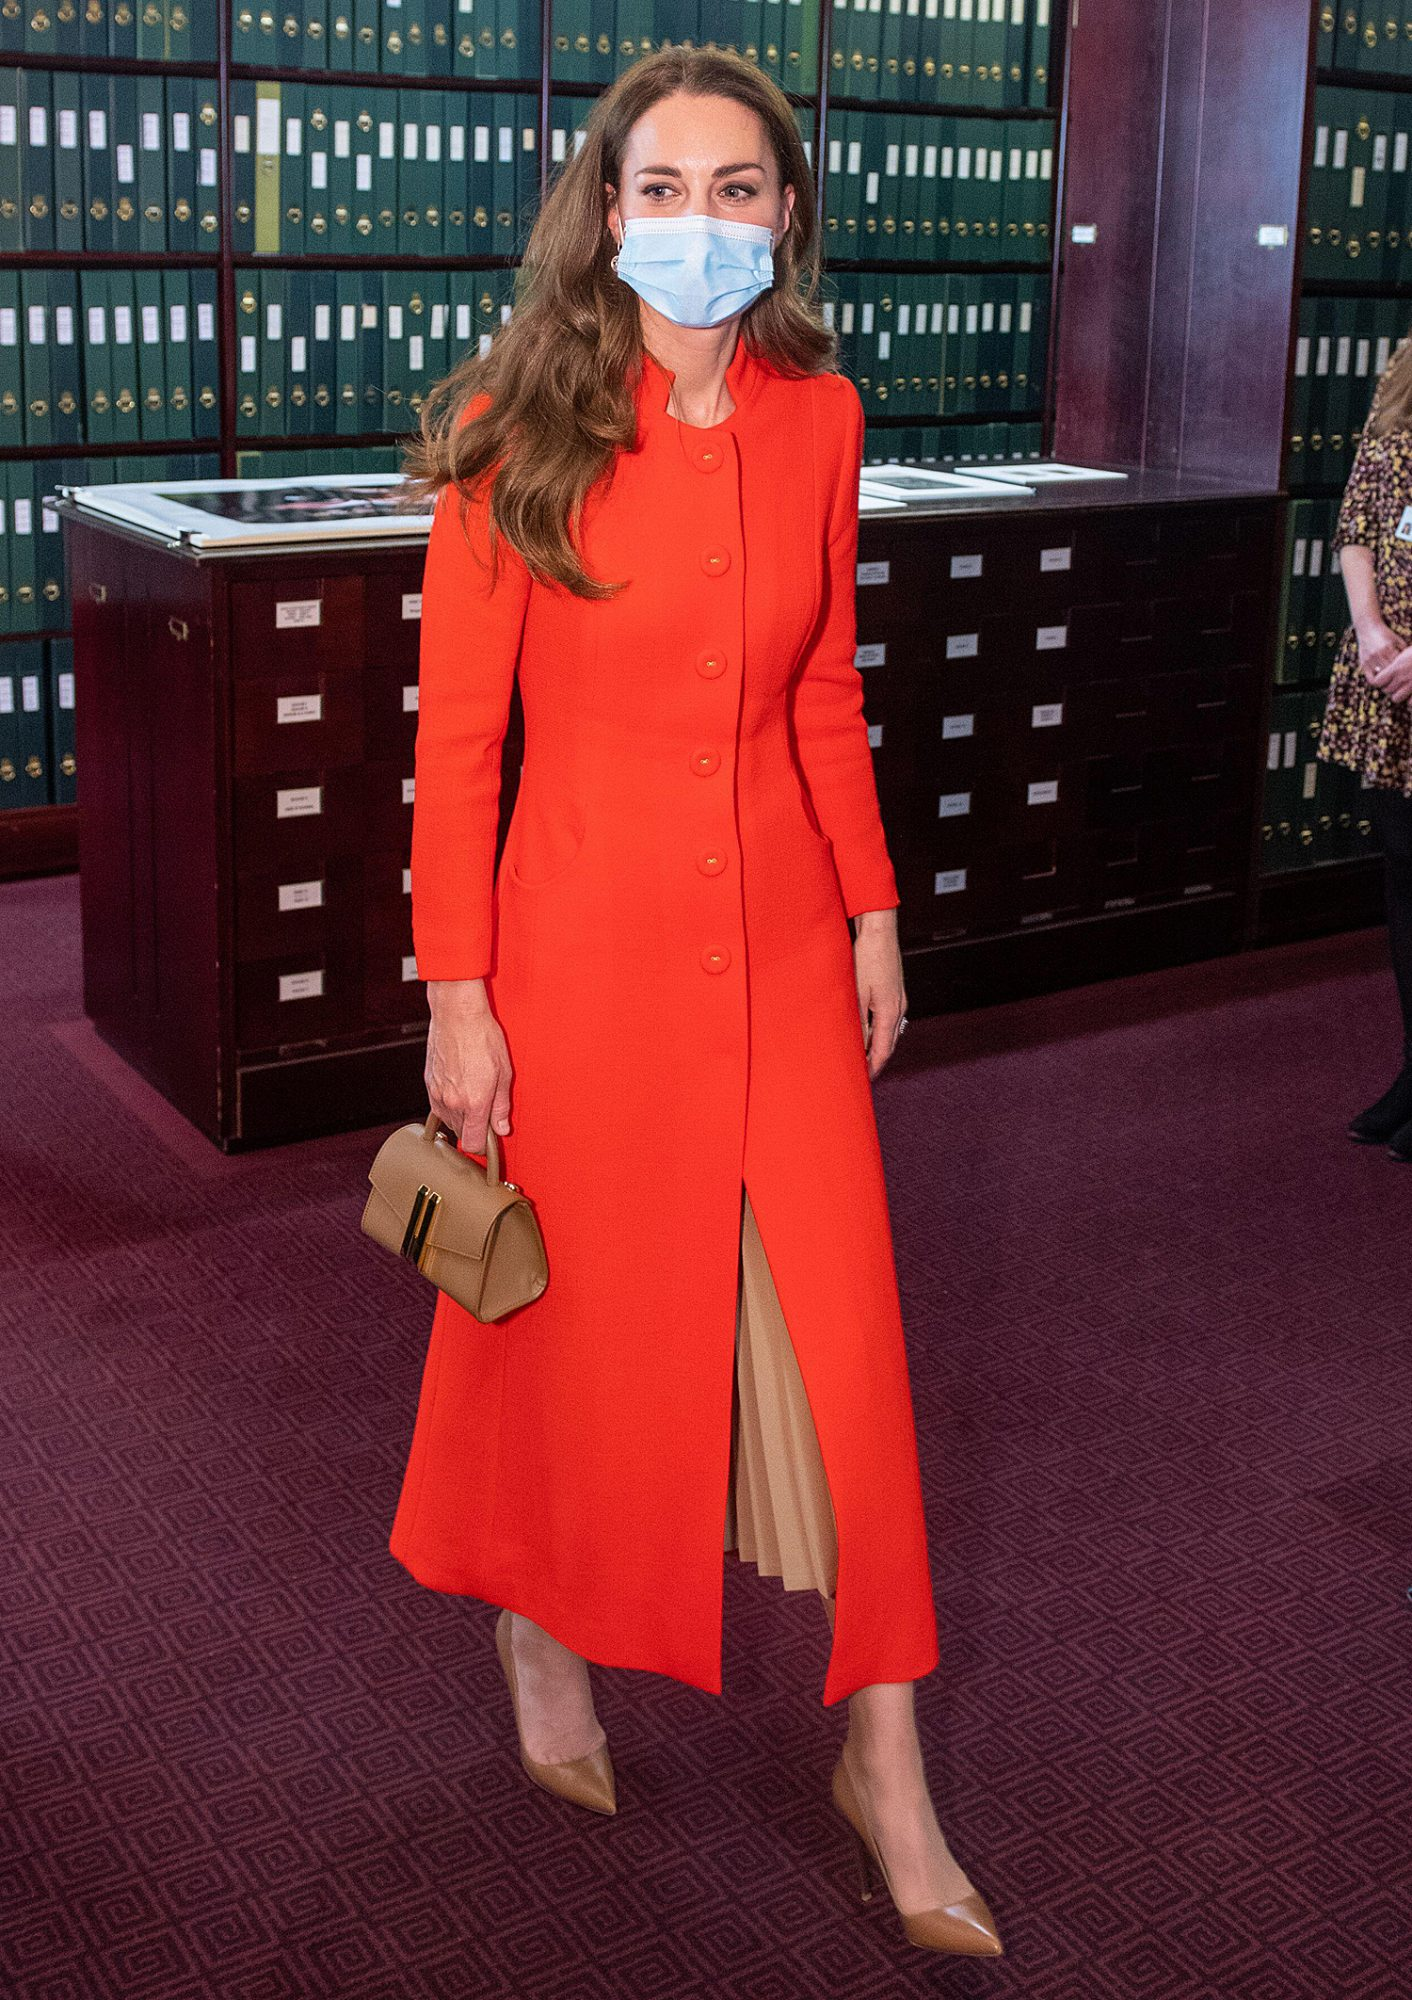 The Duchess of Cambridge during a visit to the archive in the National Portrait Gallery